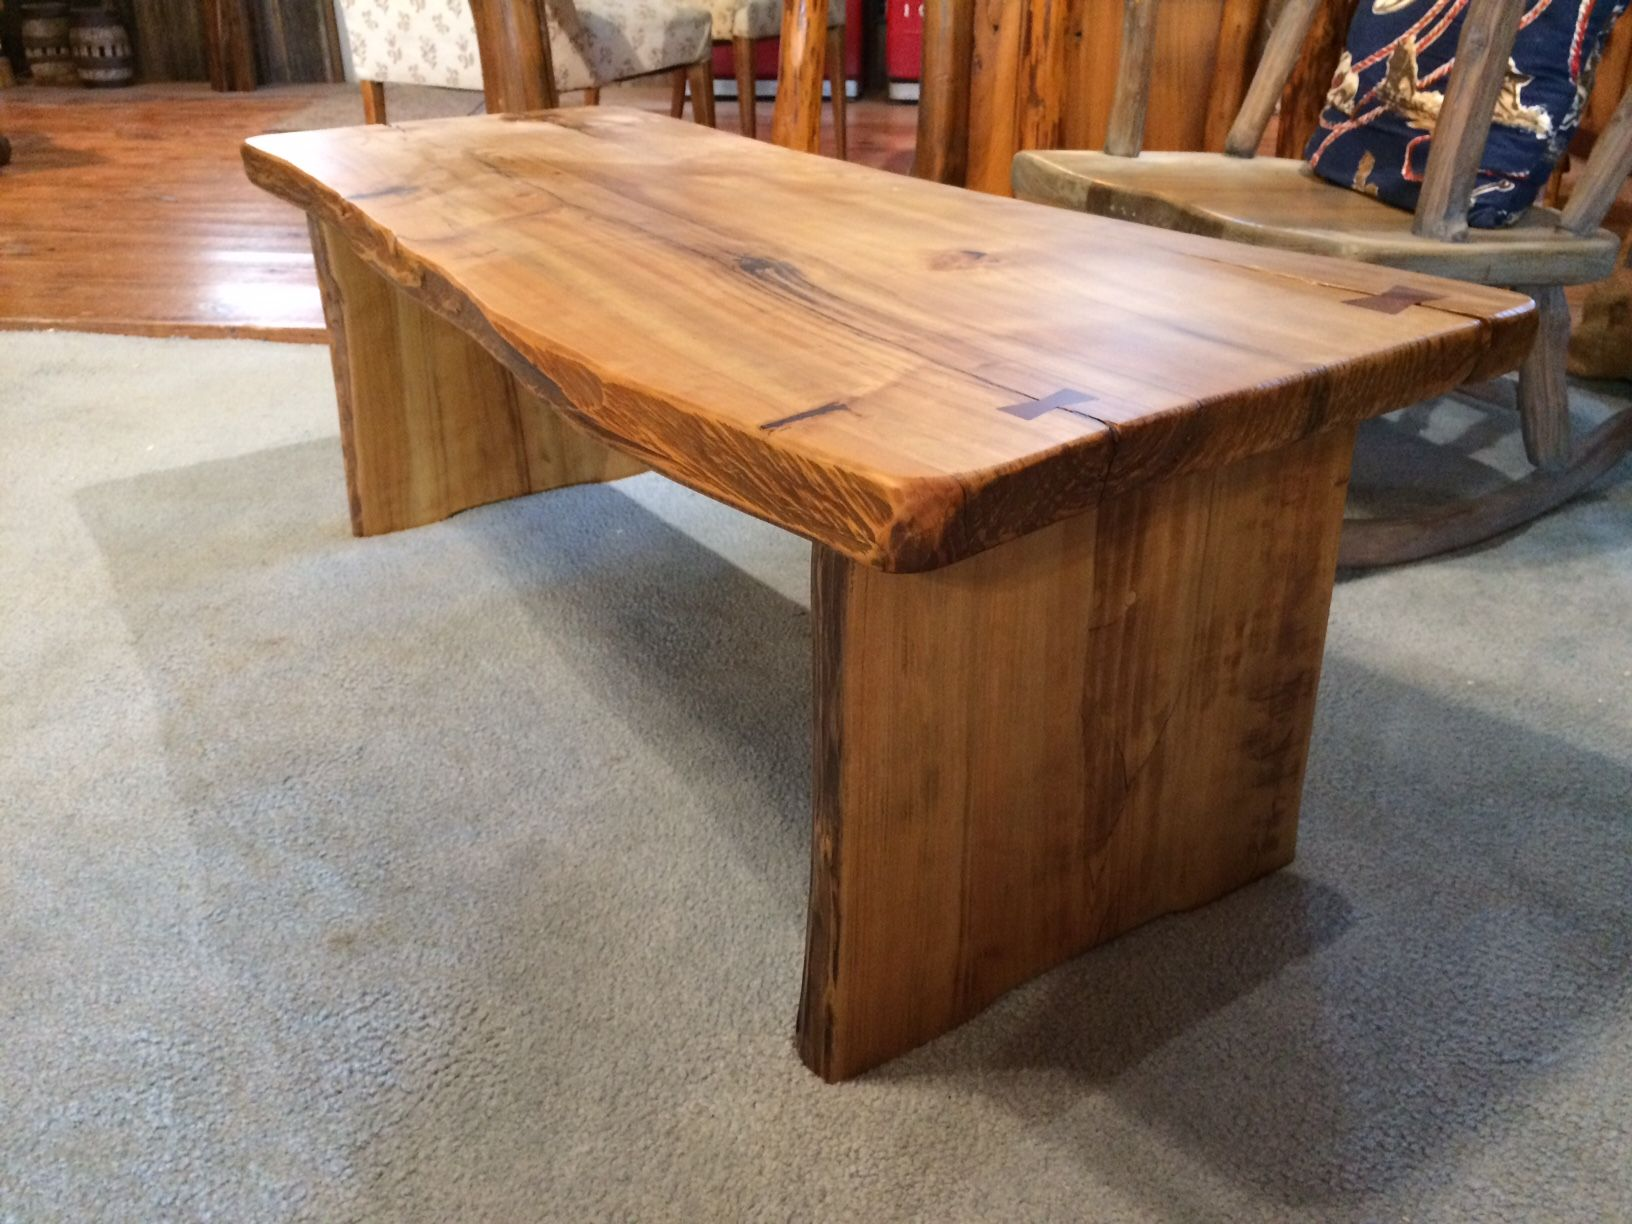 buy a handmade cypress coffee table, made to order from the